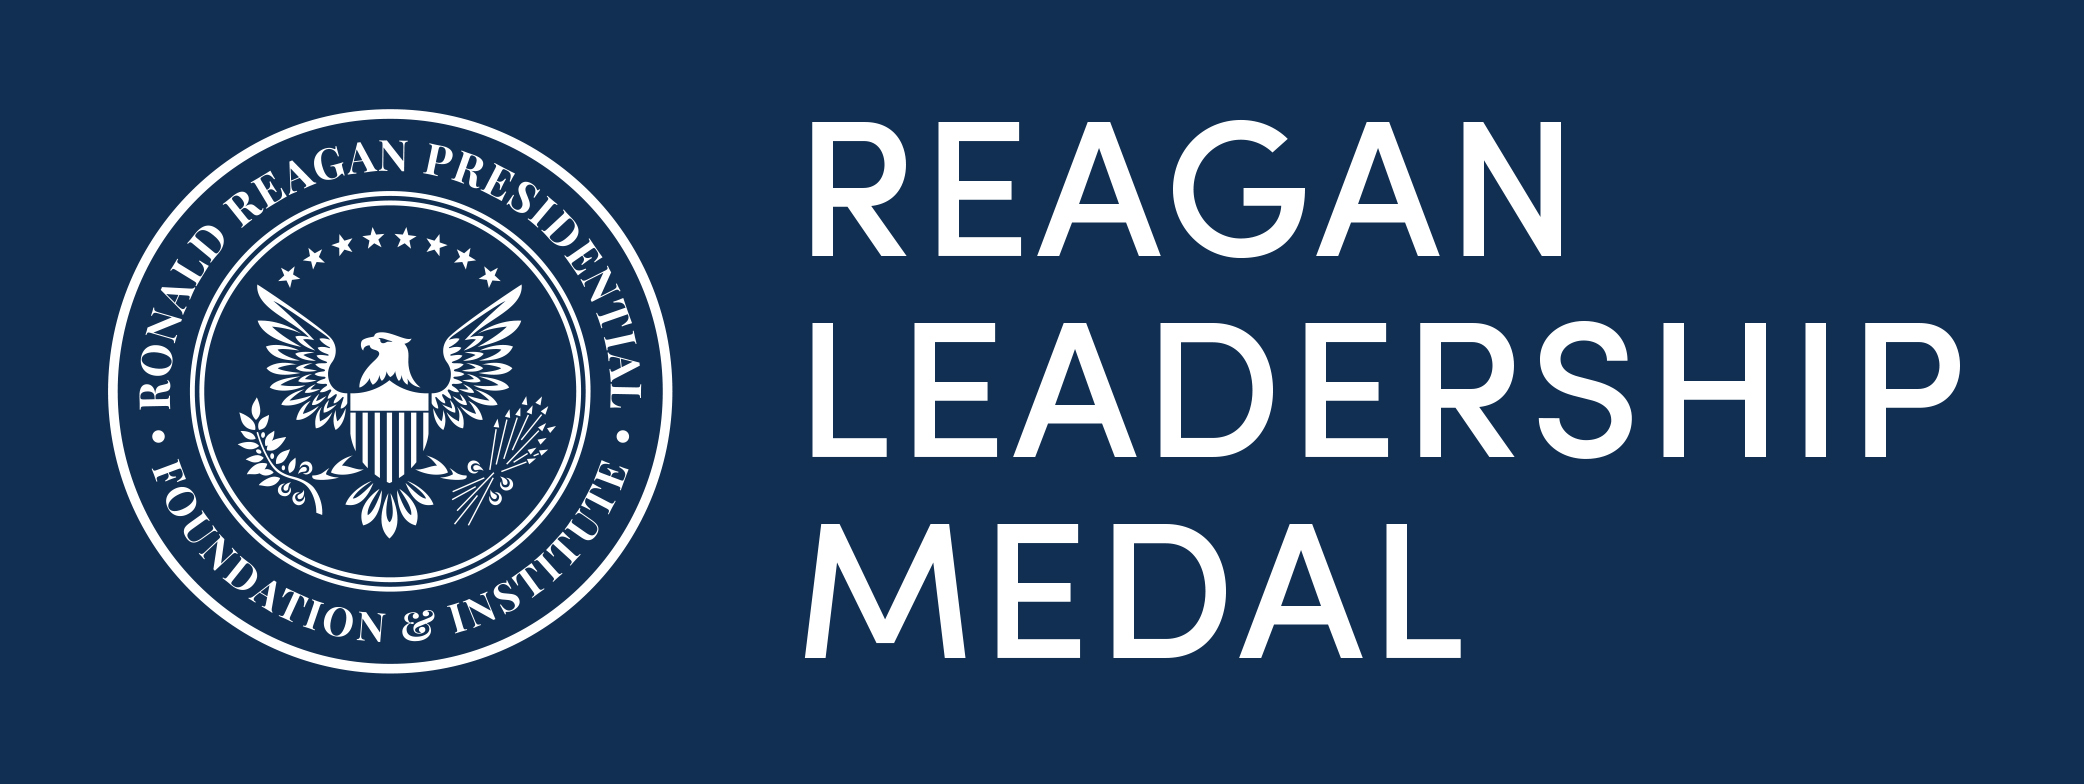 2019 Reagan Leadership Award Logo